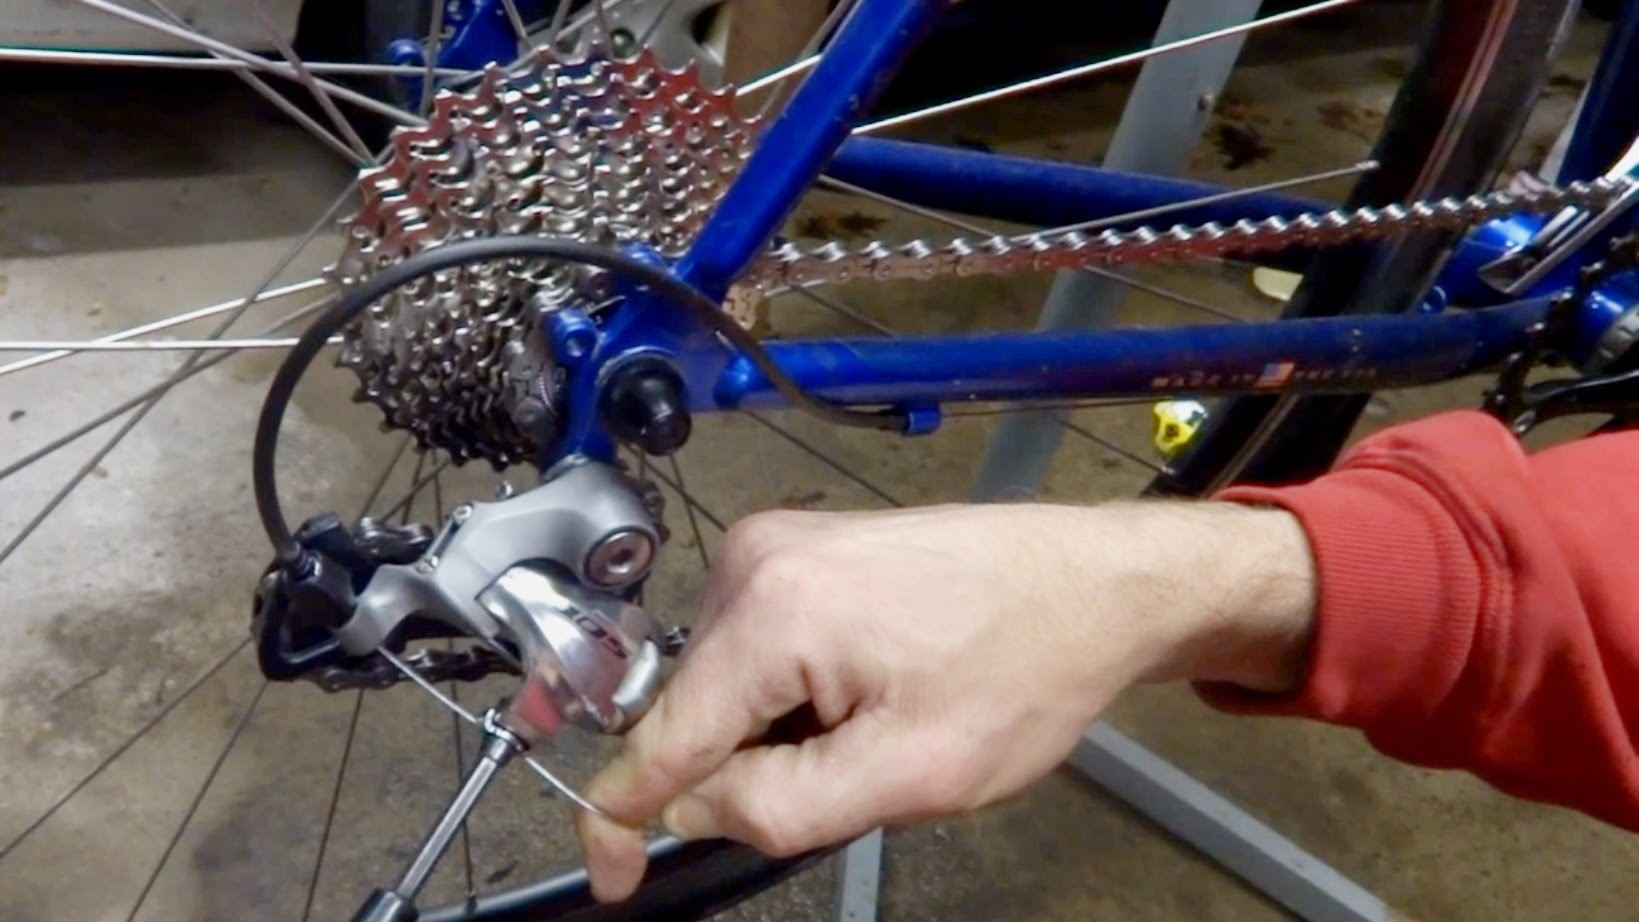 7 Speed To 10 Speed Drive Train Upgrade - DIY Cyclocross.Gravel Bike Project